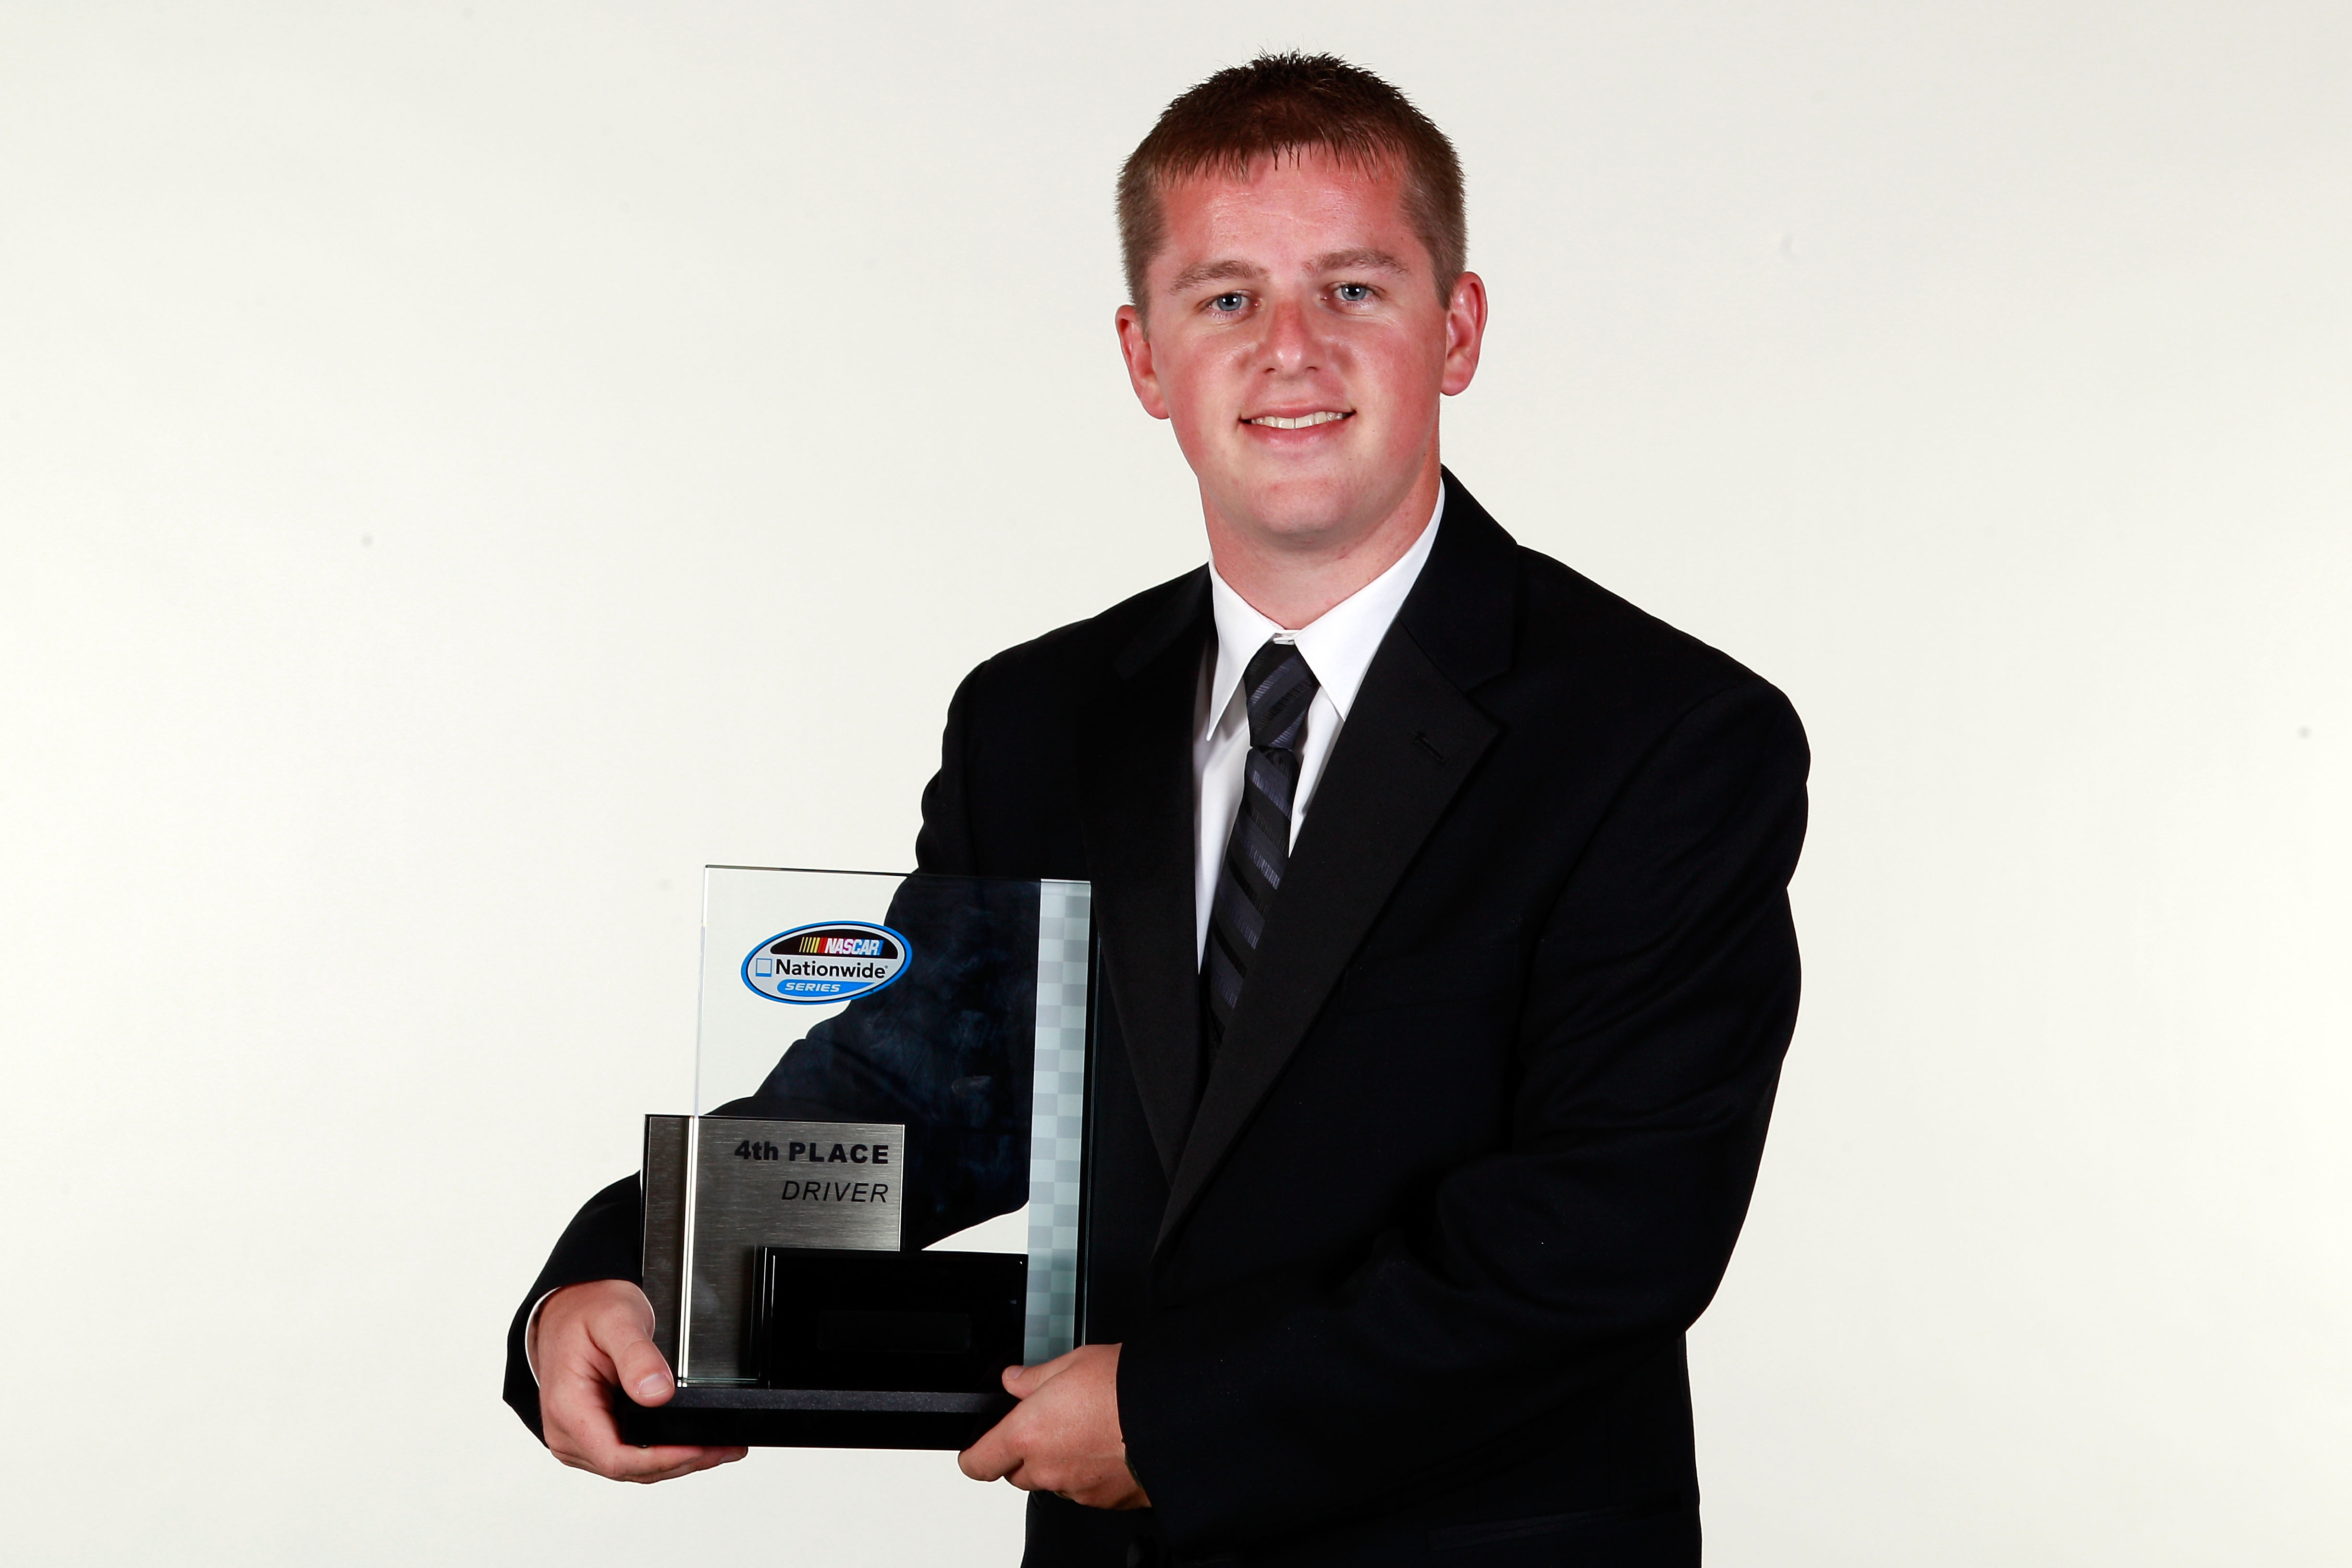 MIAMI - NOVEMBER 22:  Justin Allgaier, driver of the #12 Verizon Wireless Dodge, poses with the 4th place Nationwide Series trophy during the NASCAR Nationwide/Camping World Truck Series Banquet at Loews Miami Beach Hotel on November 22, 2010 in Miami, Fl